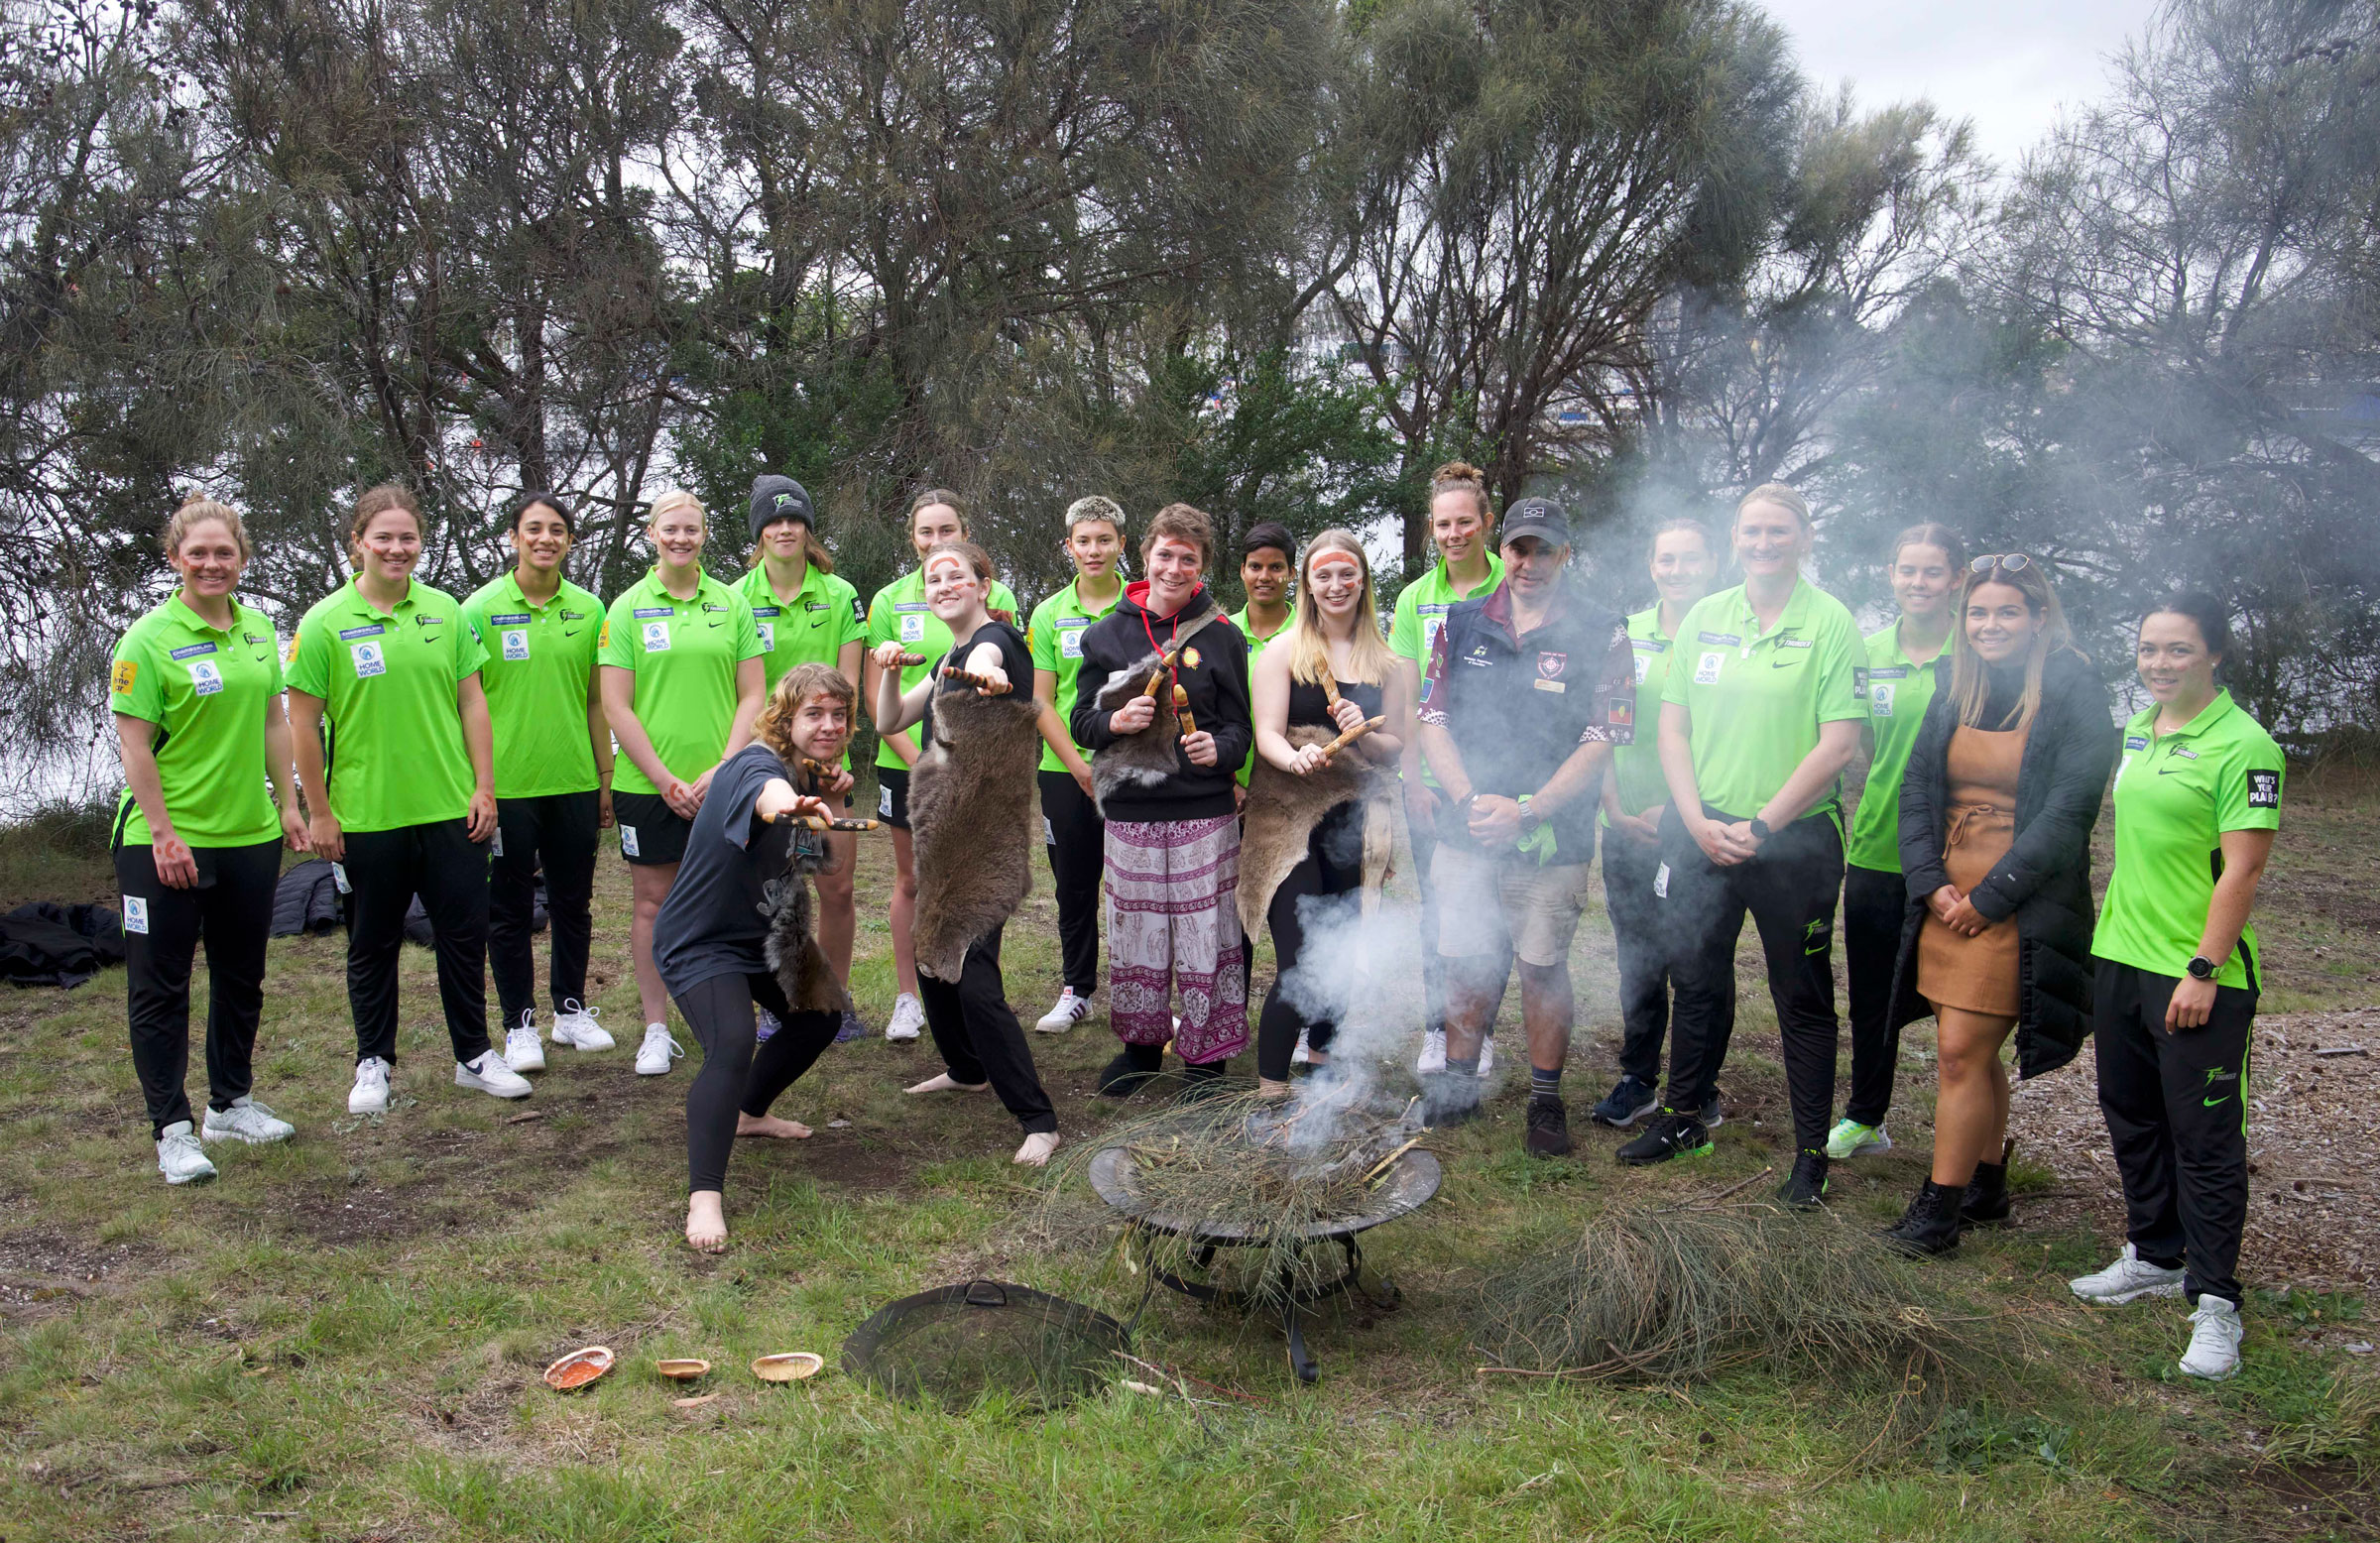 A smoking ceremony was held on the banks of the River Derwent // Supplied